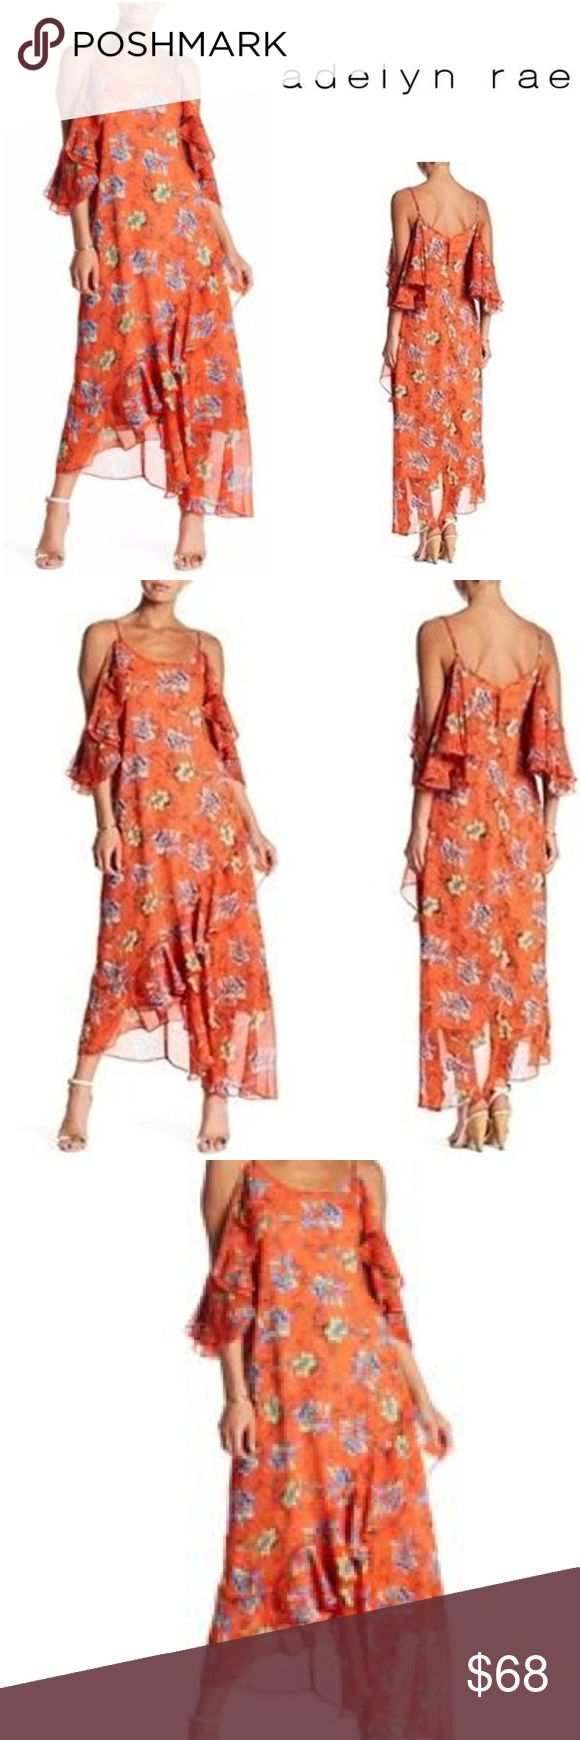 """New Adelyn Rae Printed Frill Midi Dress New with tags, Adelyn Rae Printed Frill Midi Dress  Size Small Bust: 34.5"""" Waist: 27.5"""" Hips: 38""""  Originally bought for a client, I'm currently cleaning out my client closets. Open to offers on bundles. 15% off bundles of 3+. Shipping cost is the same with one or multiple items!   Free gift with every purchase! Your purchase goes towards the non-profit organization I'm founding! <3 Adelyn Rae Dresses Midi"""